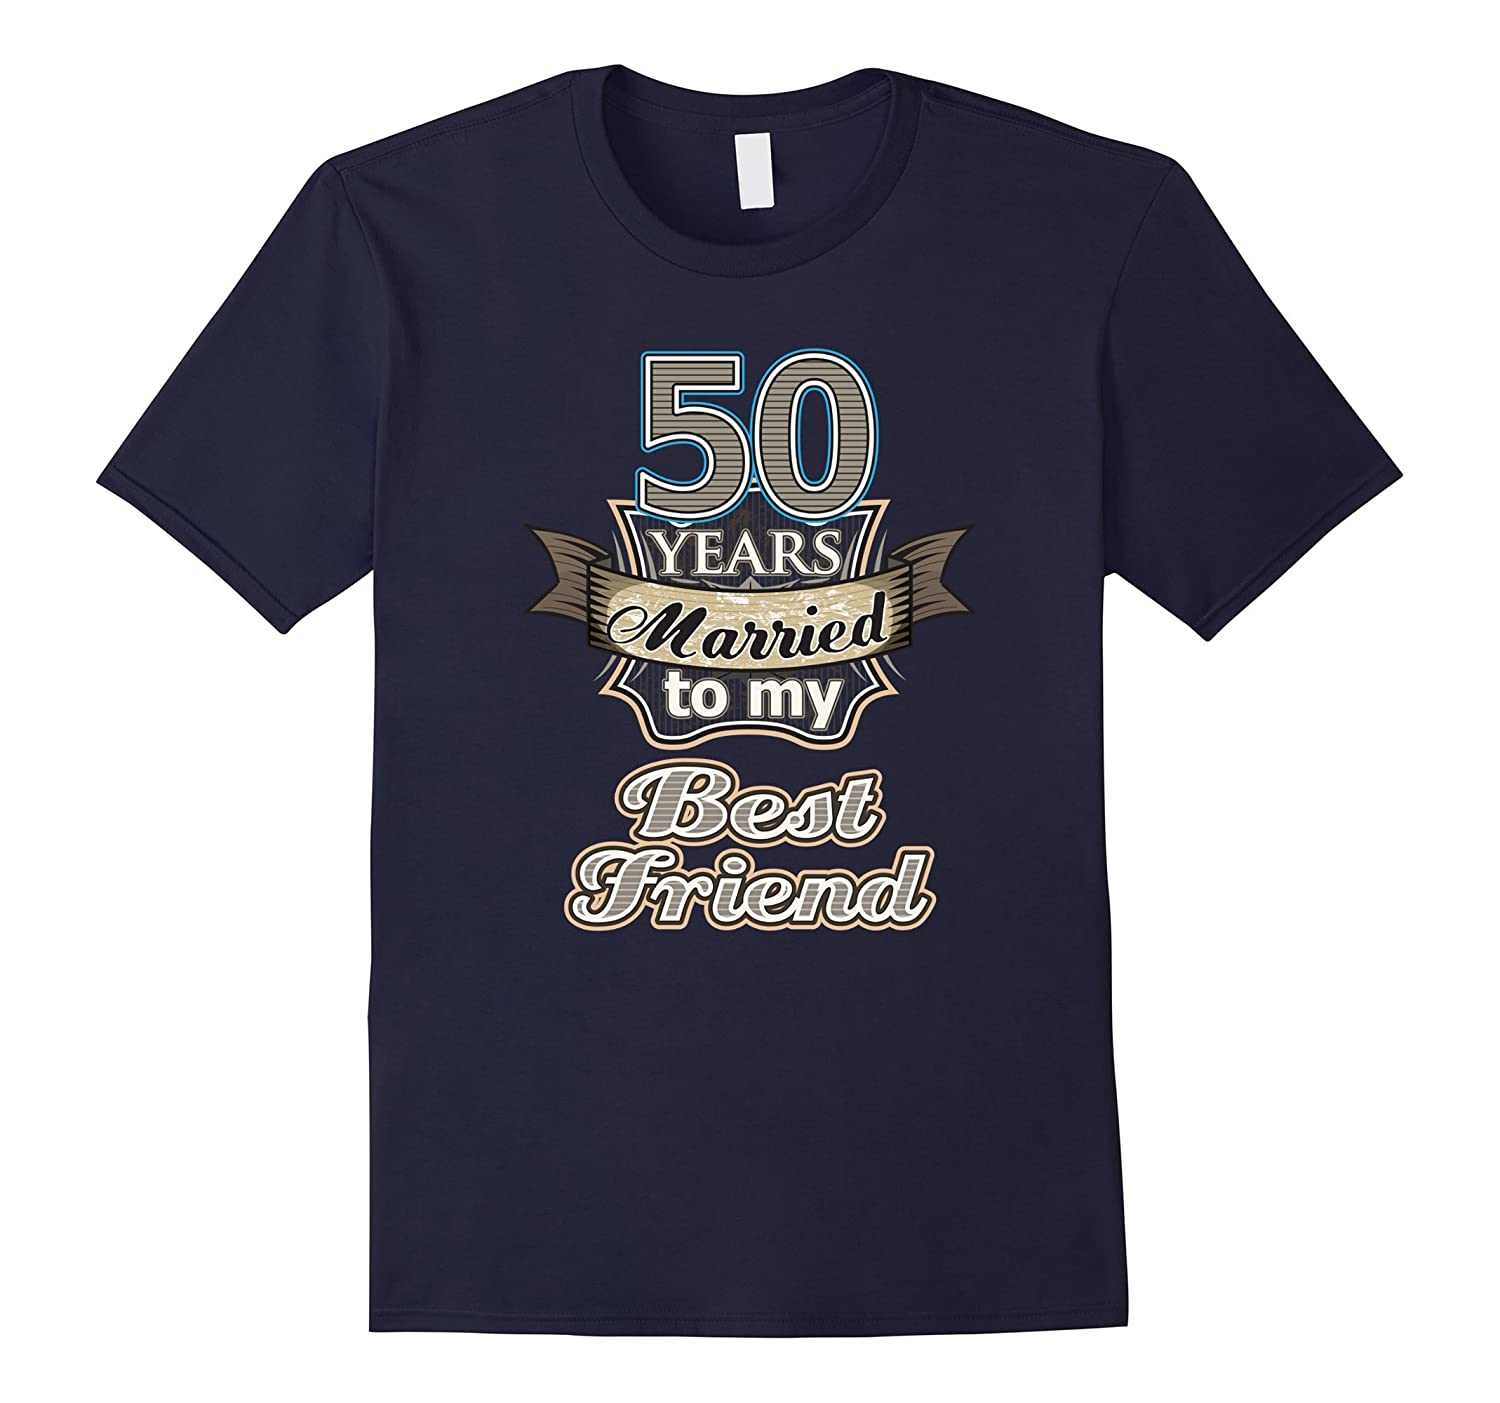 50 years married to my best friend wedding anniversary Shirt-TH